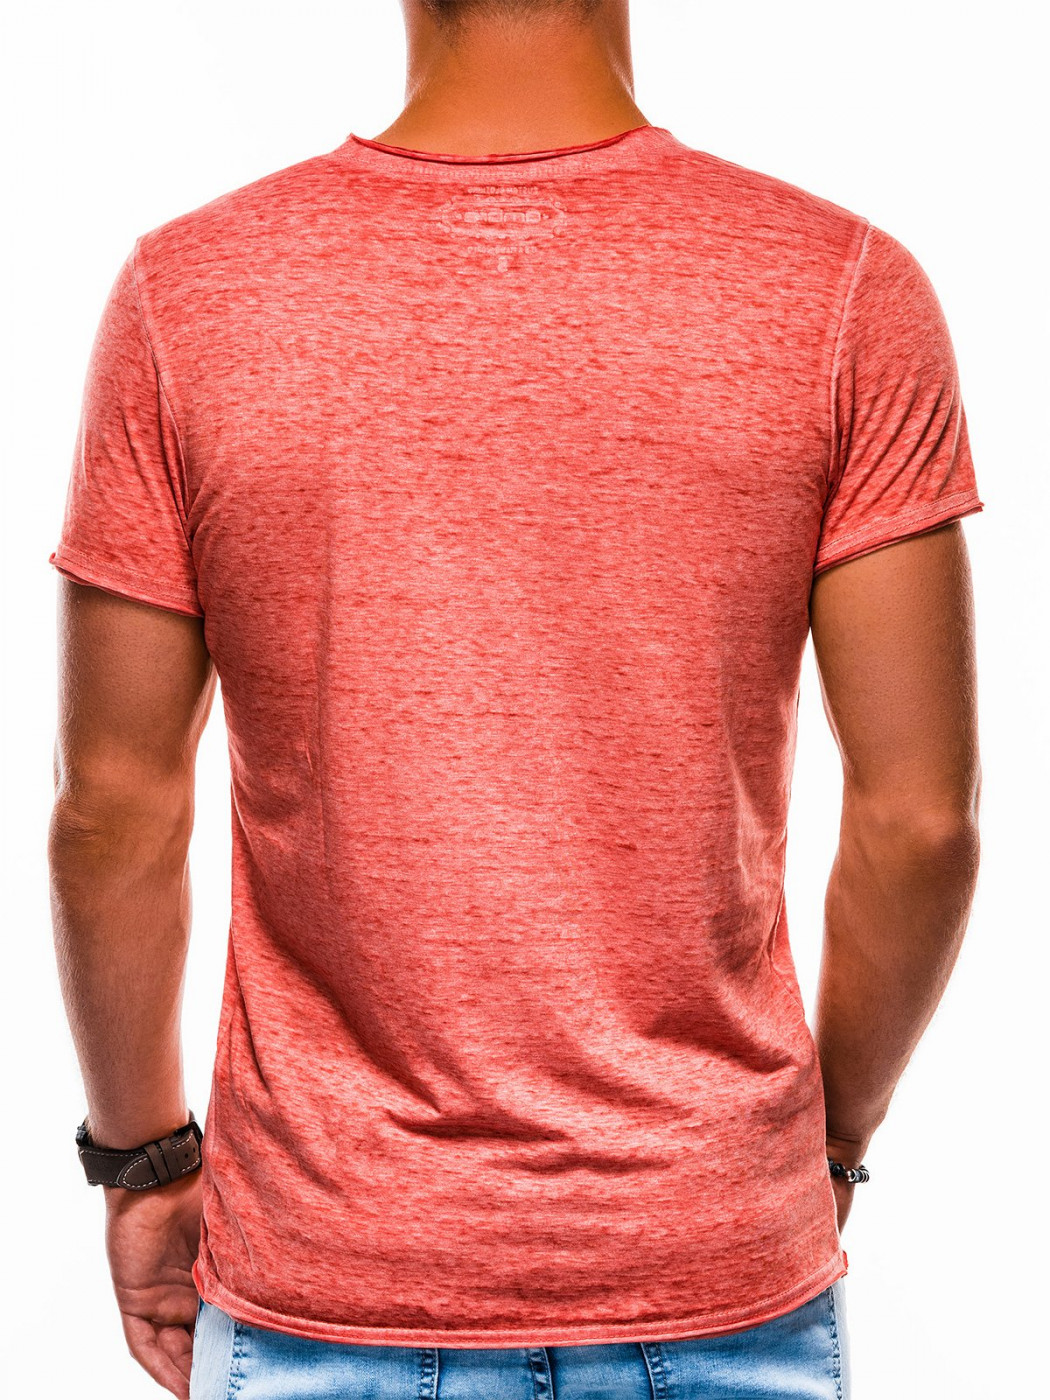 Ombre Clothing Men's Printed T-shirt S1052